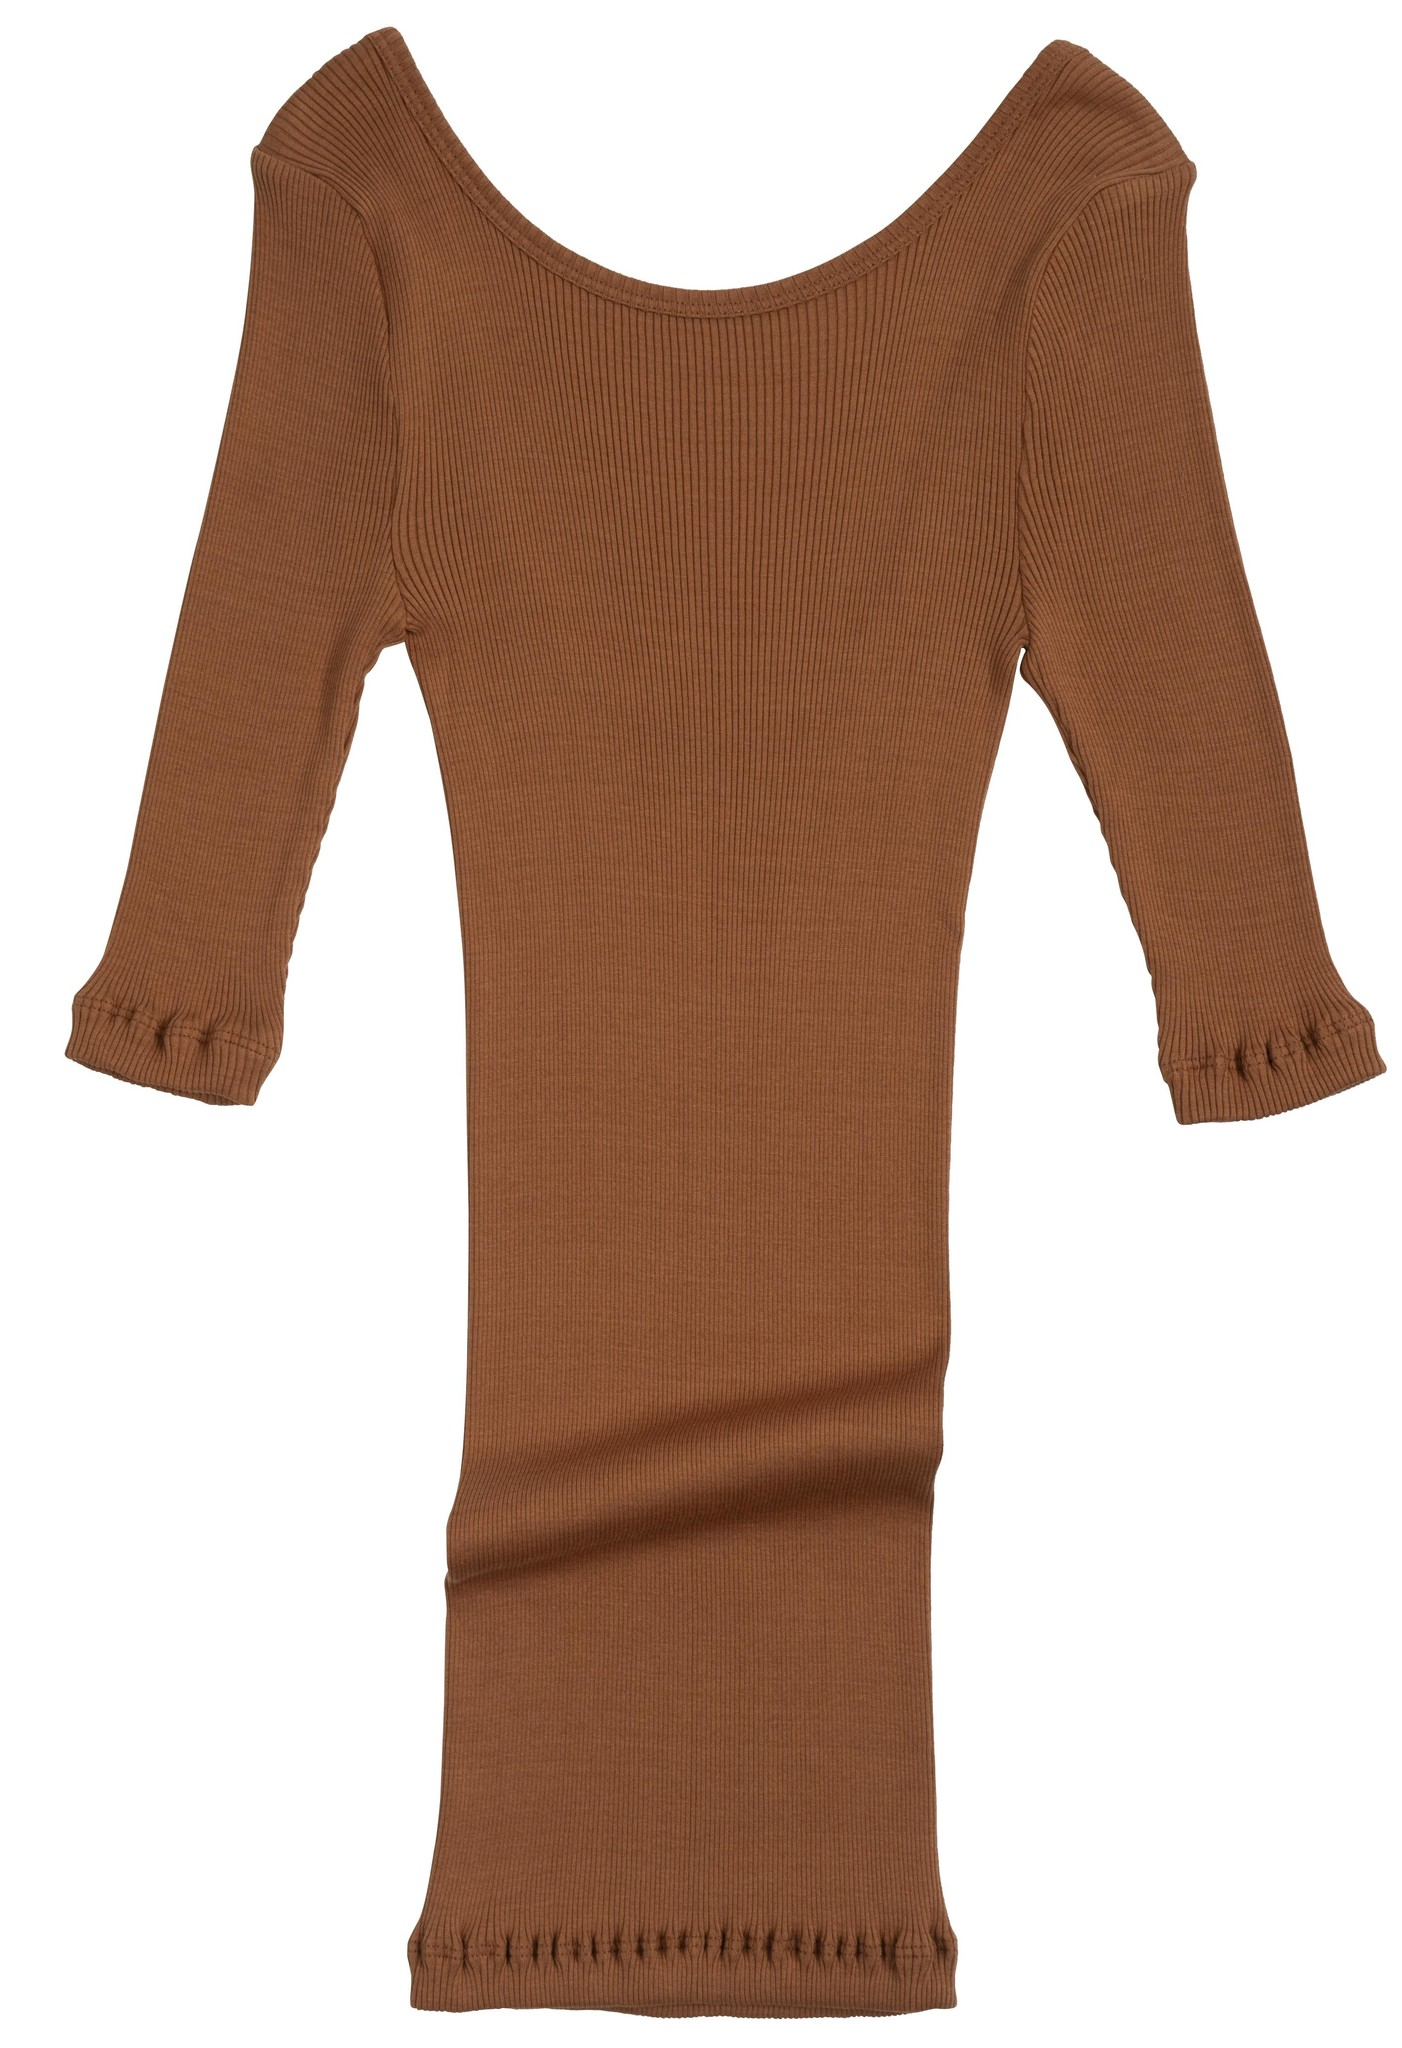 Minimalisma women's shirt GYM 3/4 sleeves and low back - fine rib - 70% silk - rooibos - S/M and M/L